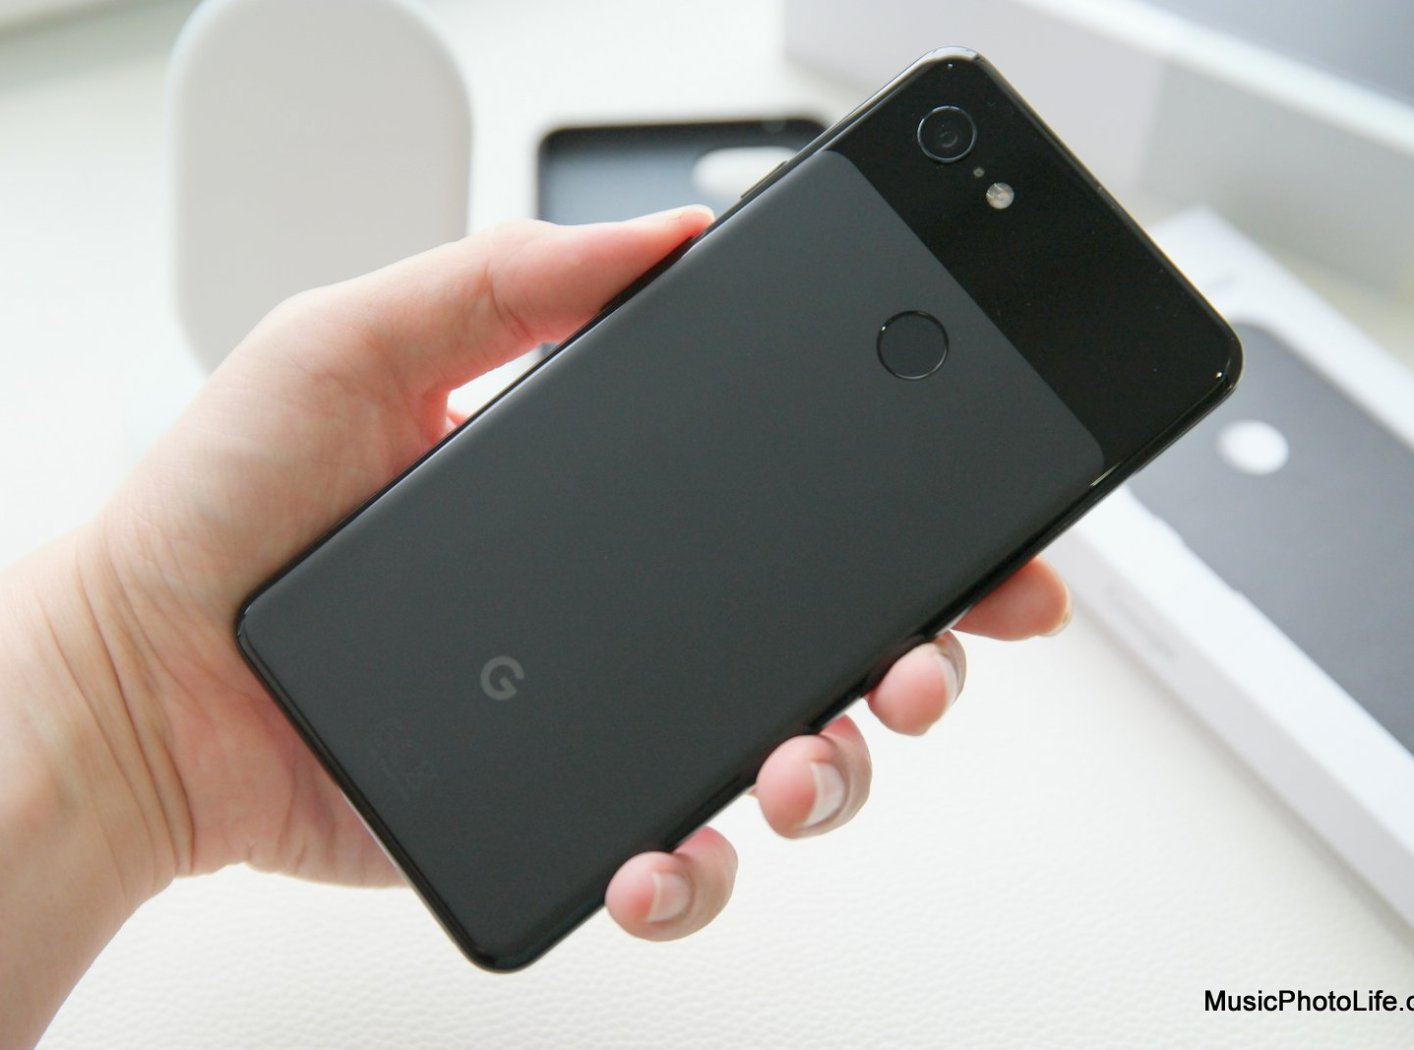 Google Pixel 3 XL Review: It's All About The Software